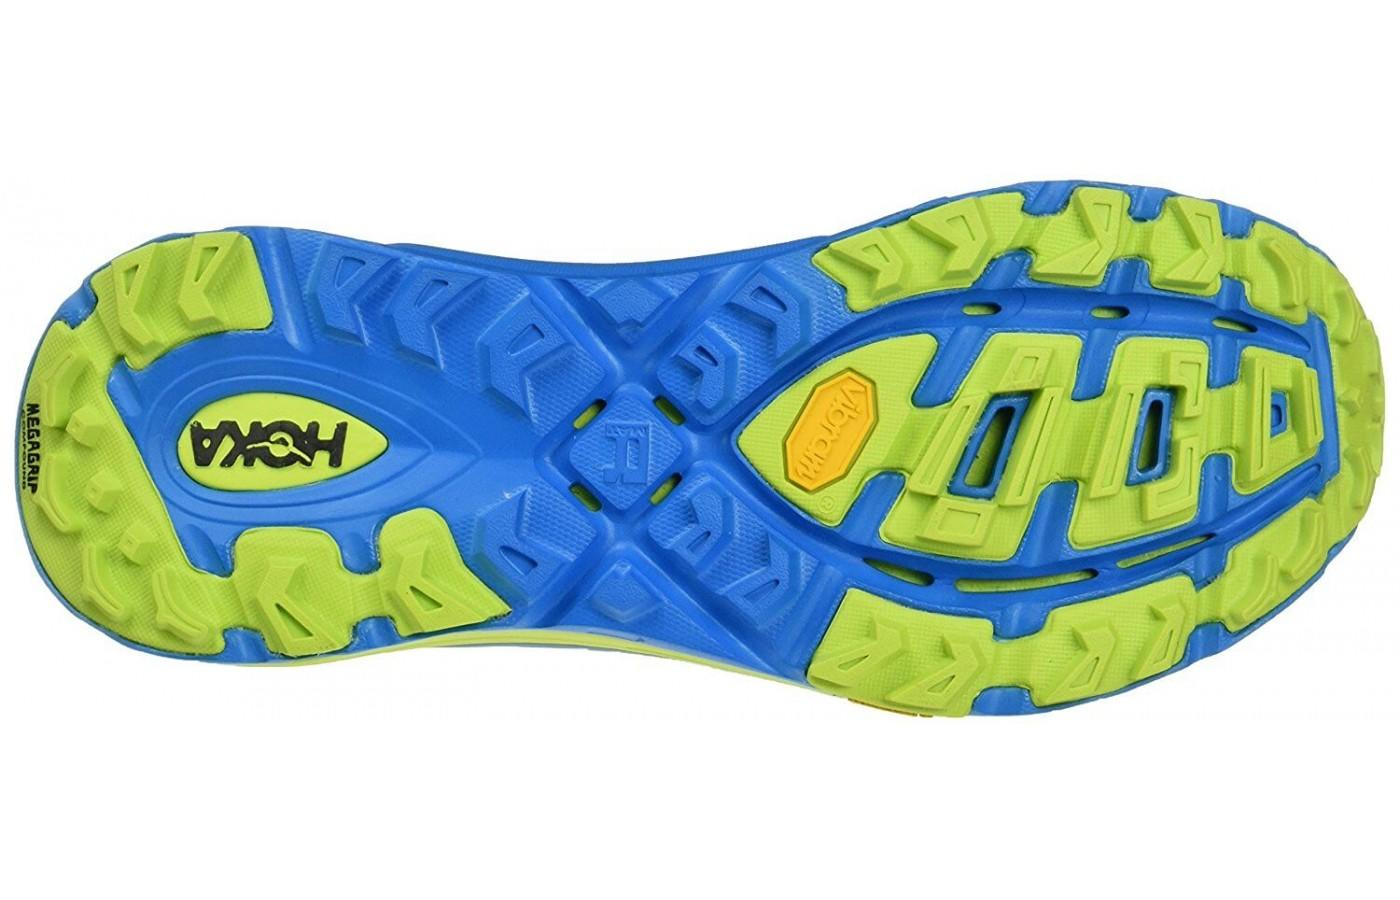 Hoka One One Mafate Speed 2 features an RMAT outsole